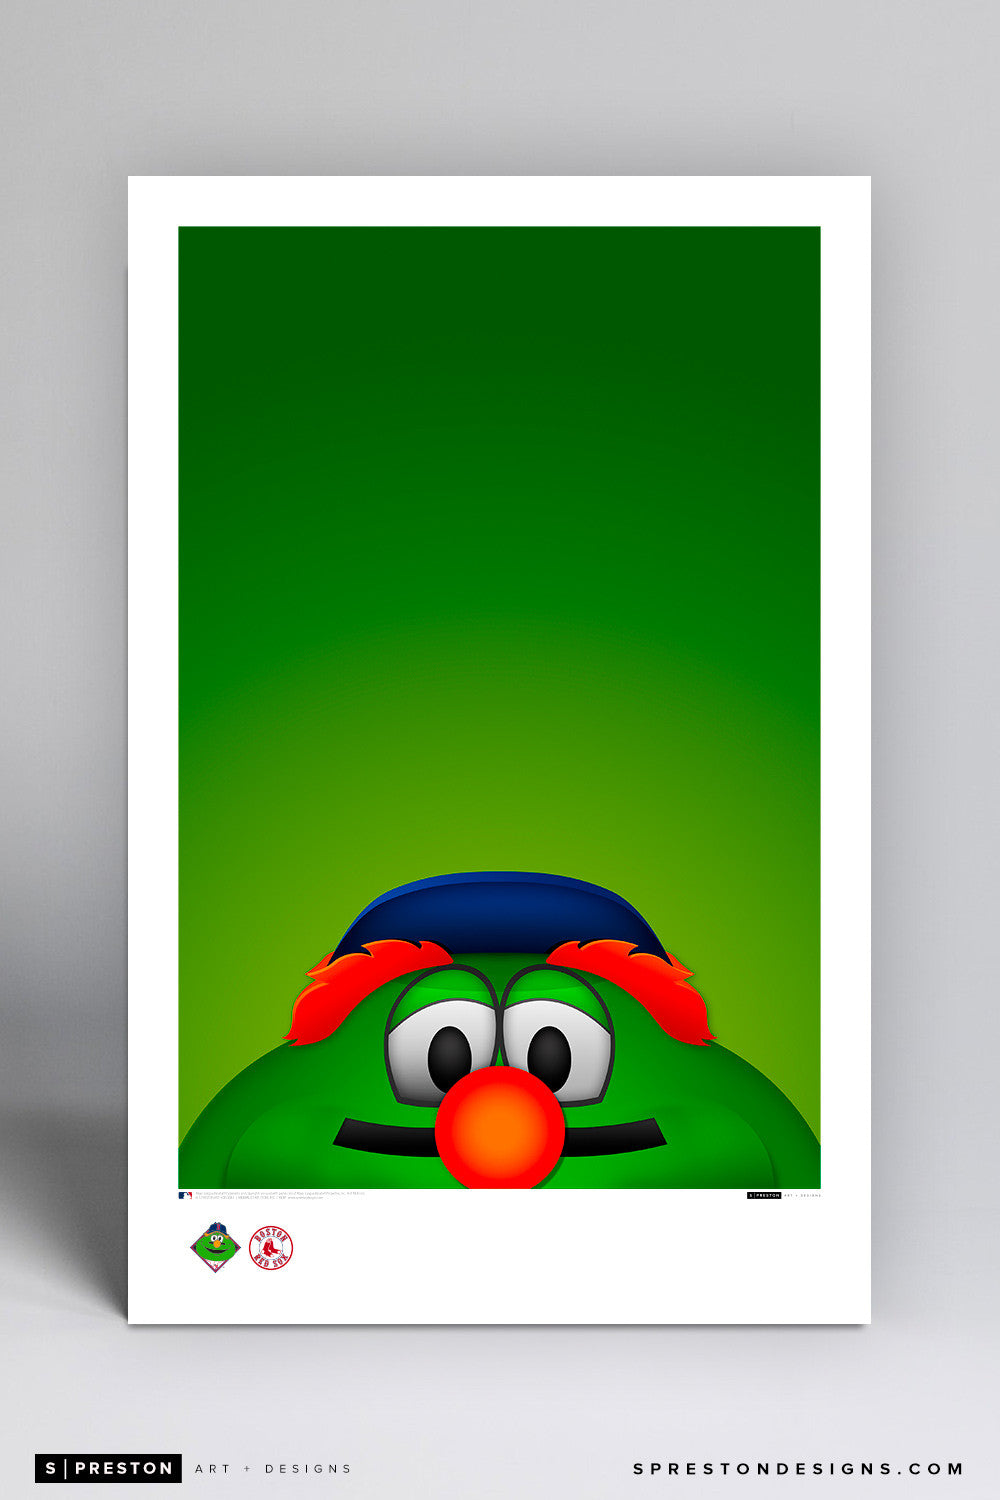 Minimalist Wally The Green Monster Poster Print Boston Red Sox - S Preston